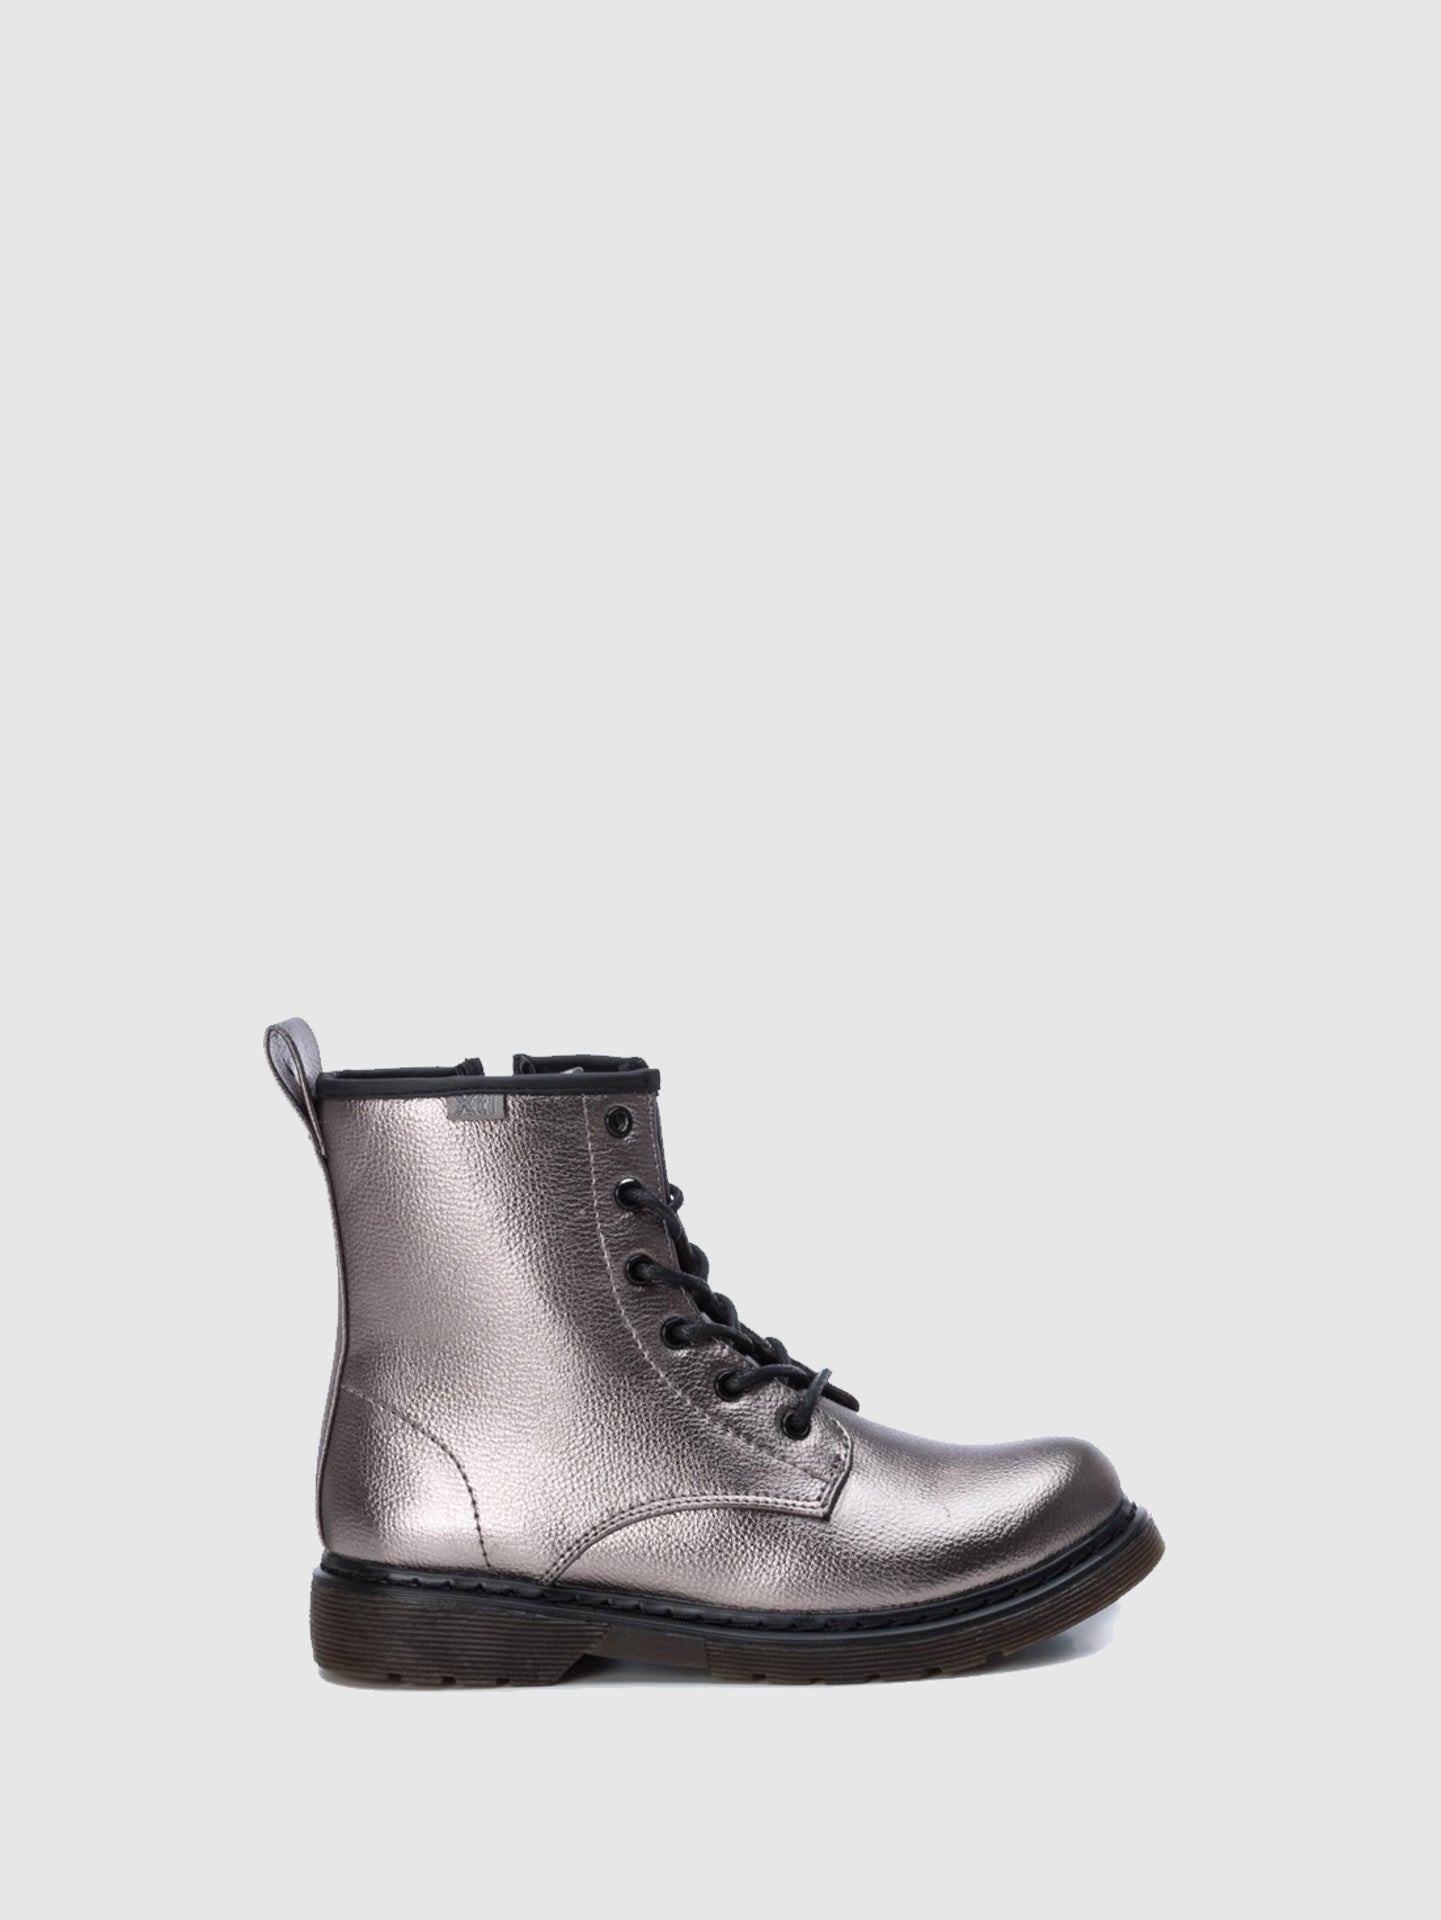 XTI Kids Silver Zip Up Boots